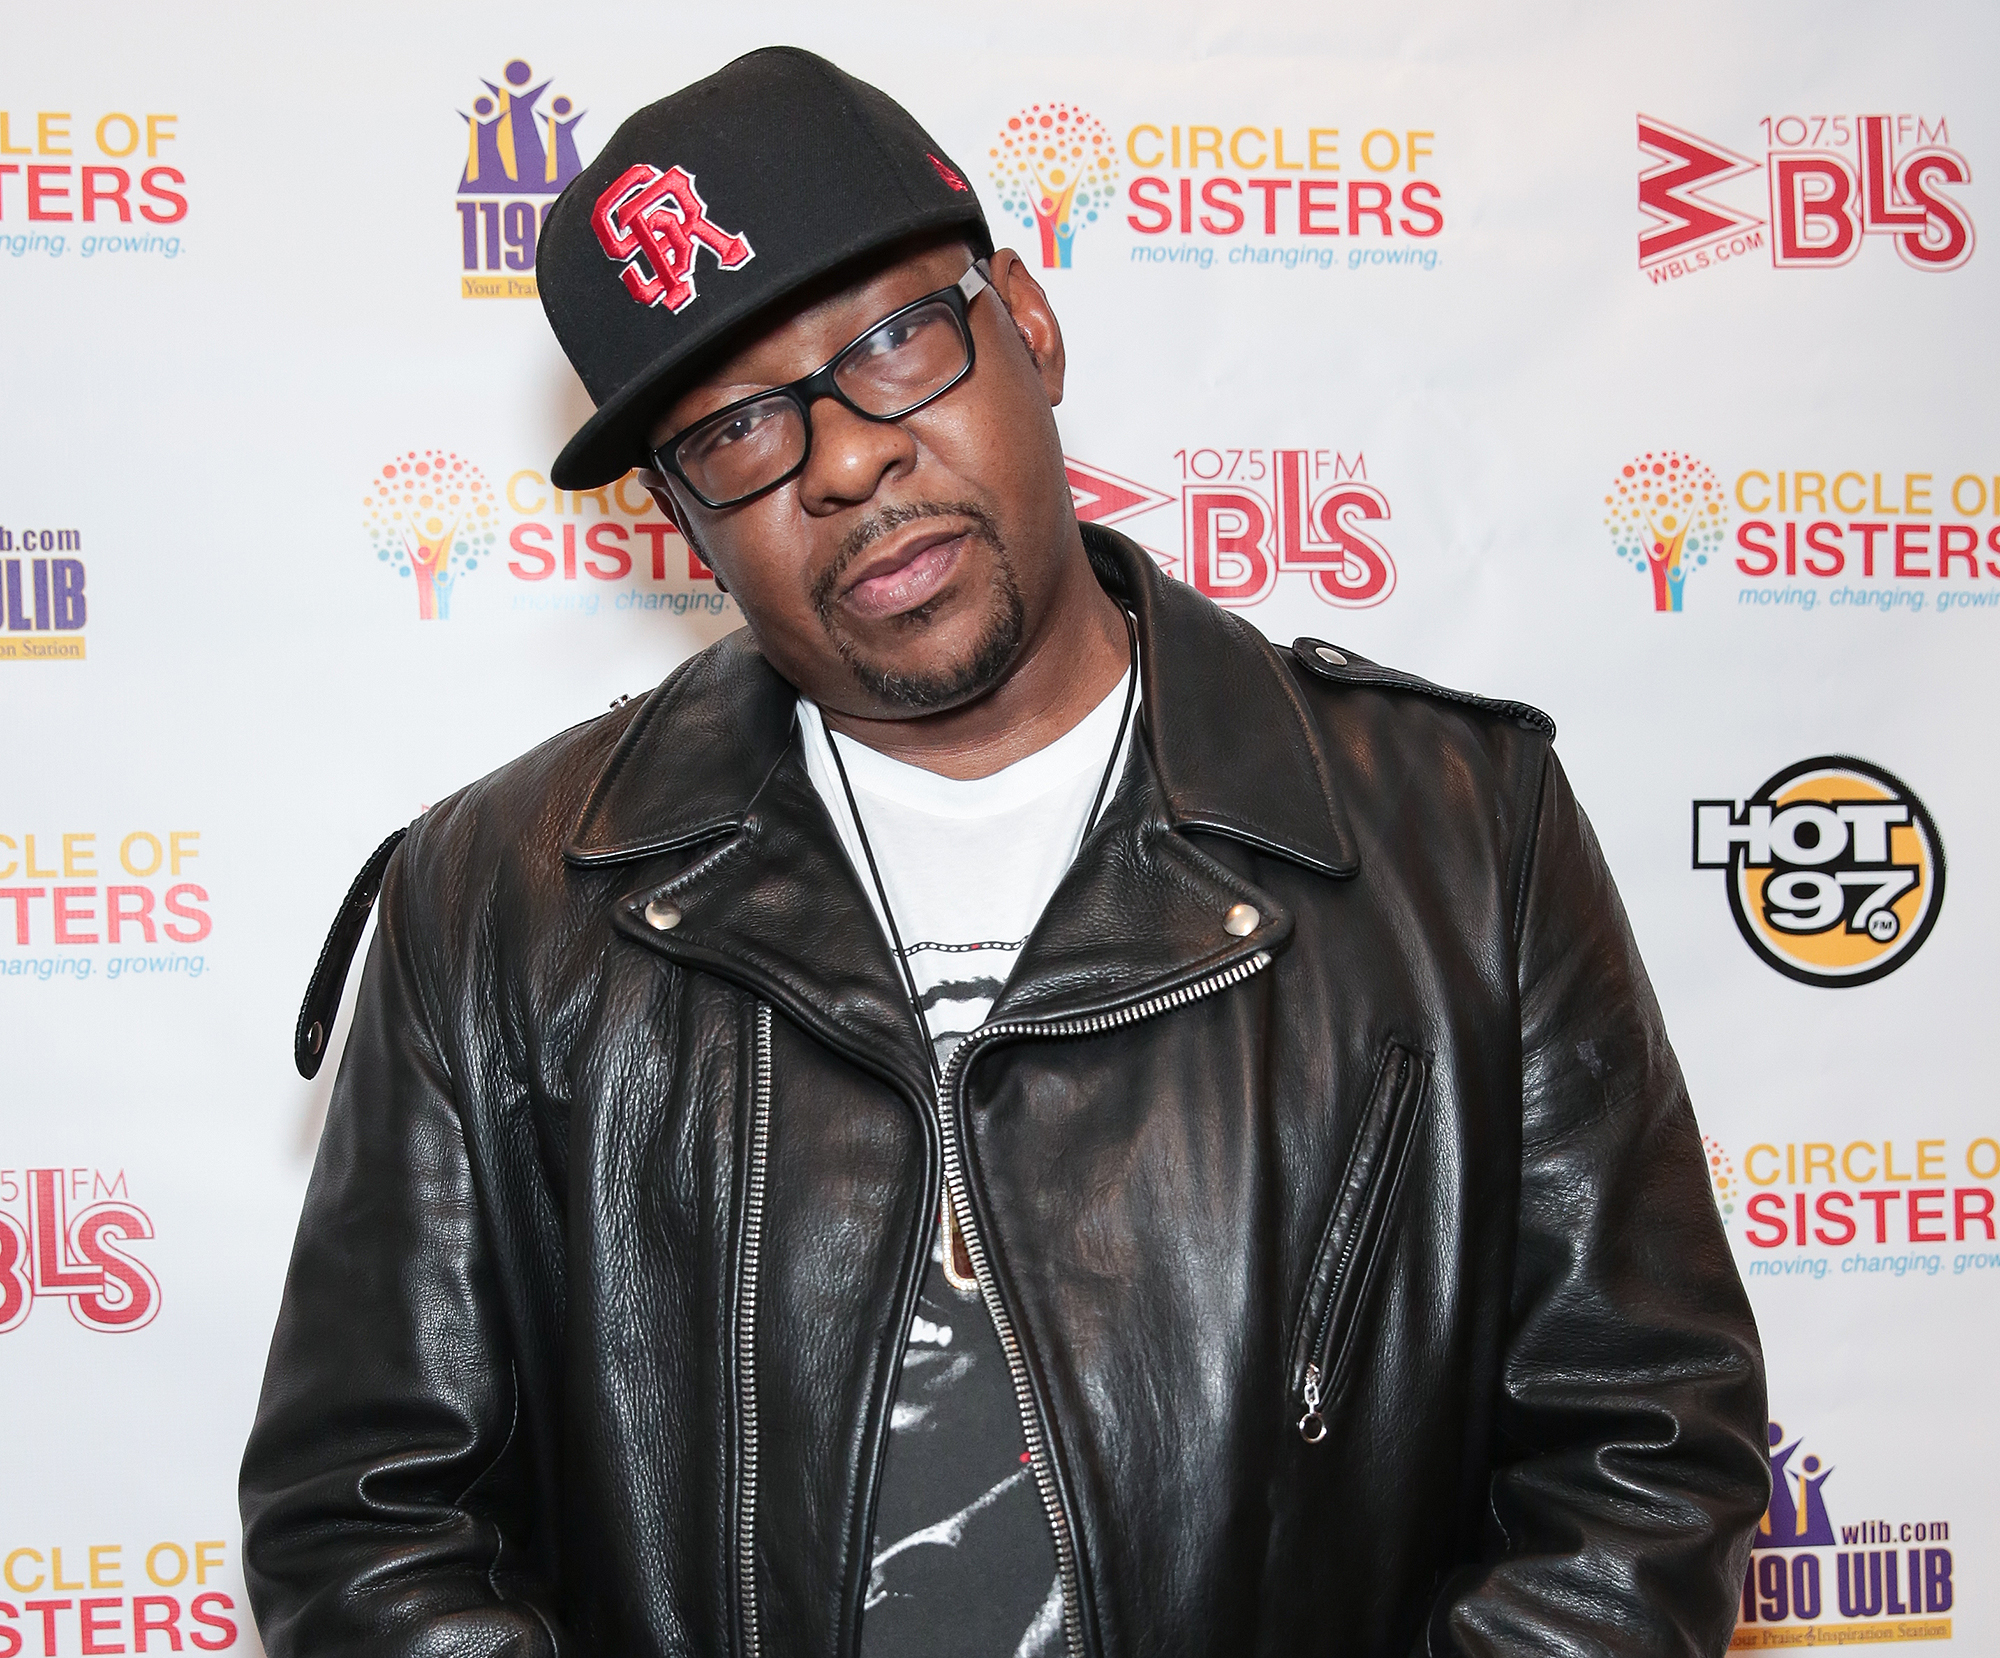 Bobby Brown - News